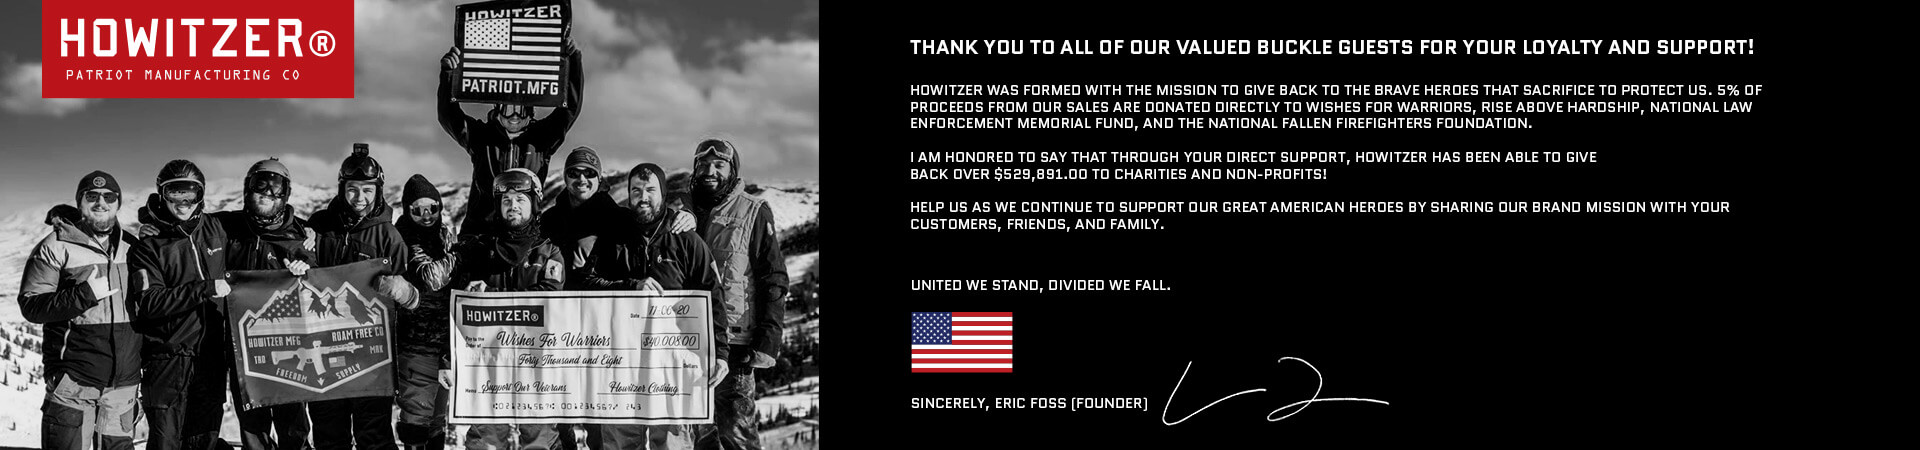 Thank you to all of our valued Buckle Guests for Your Loyalty and Support! Howitzer was formed with the mission to give back to the brave heroes that sacrifice to protect us.